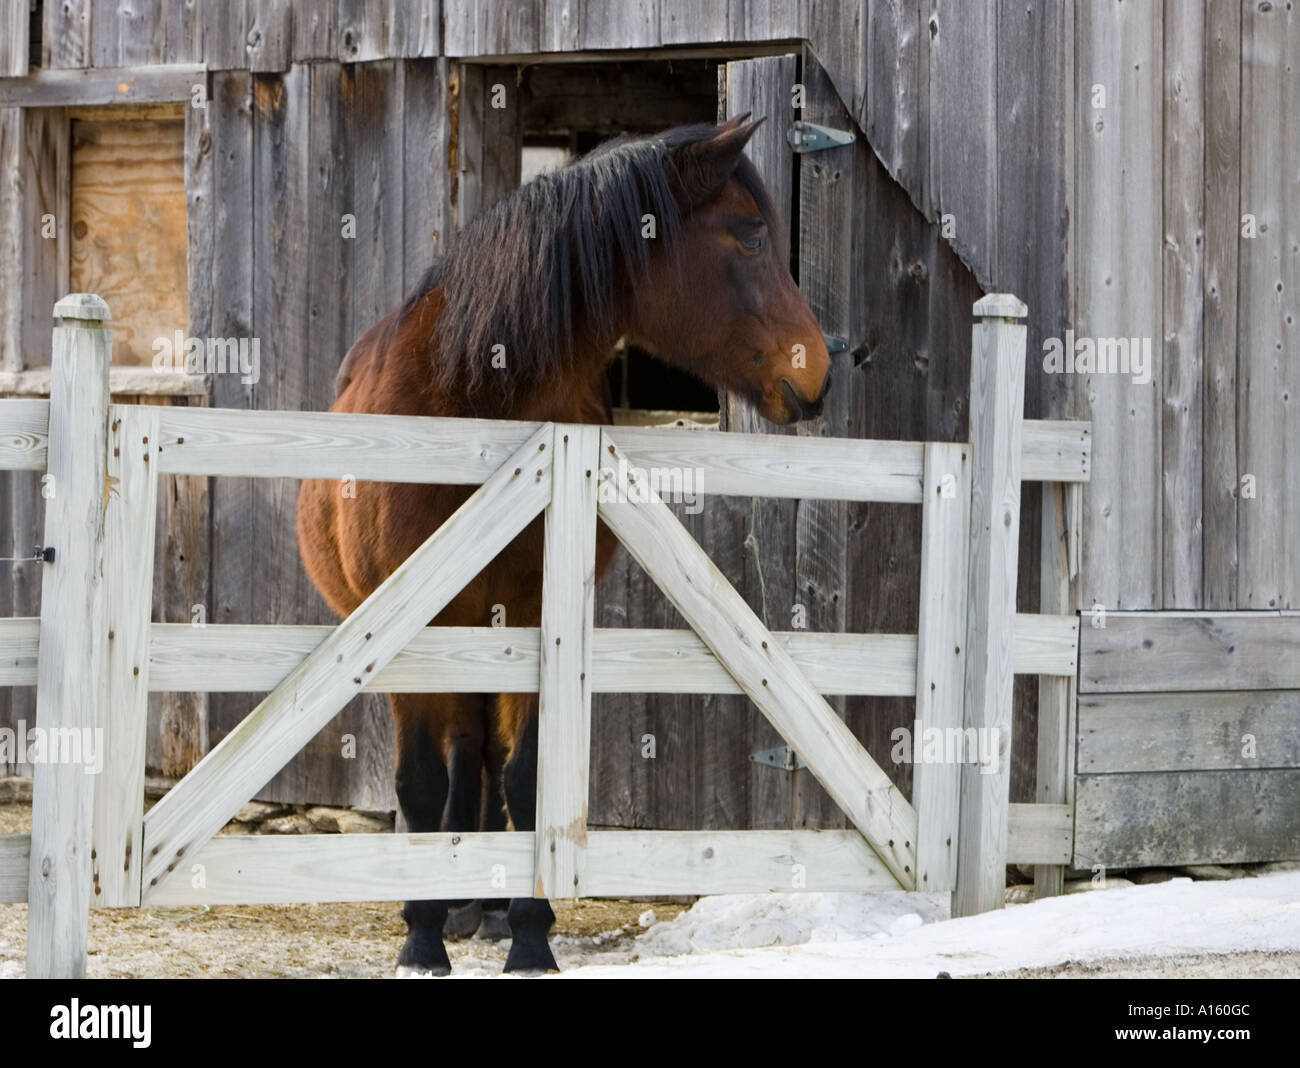 A Horse In Front Of A Rustic Barn Stock Photo Alamy